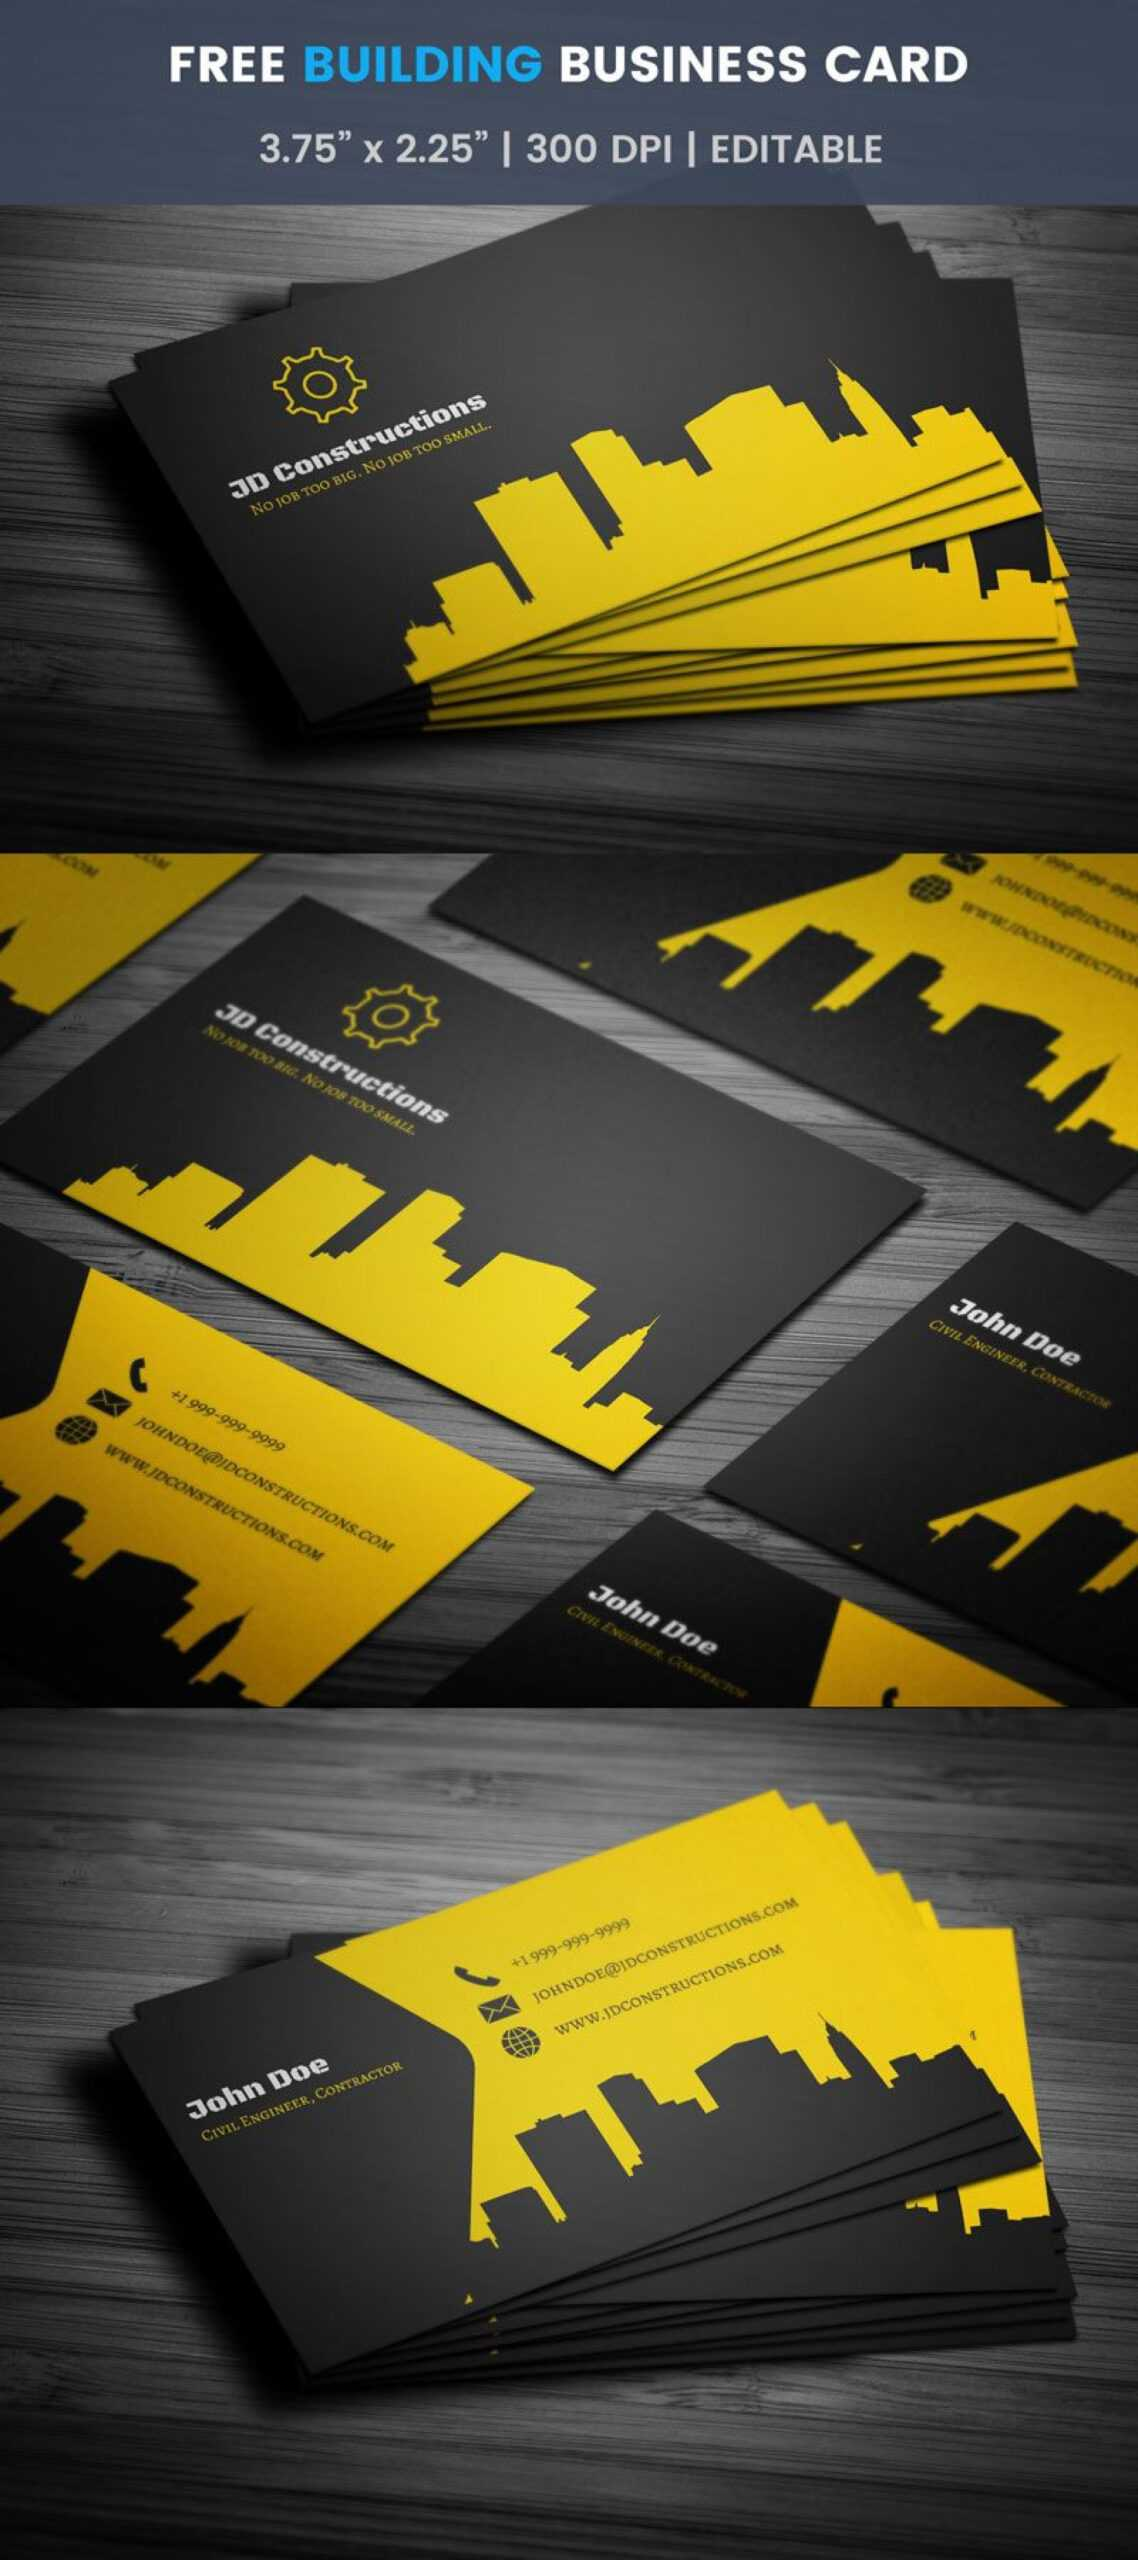 021 Trancprnt Business Card Template Ideas Construction For Construction Business Card Templates Download Free